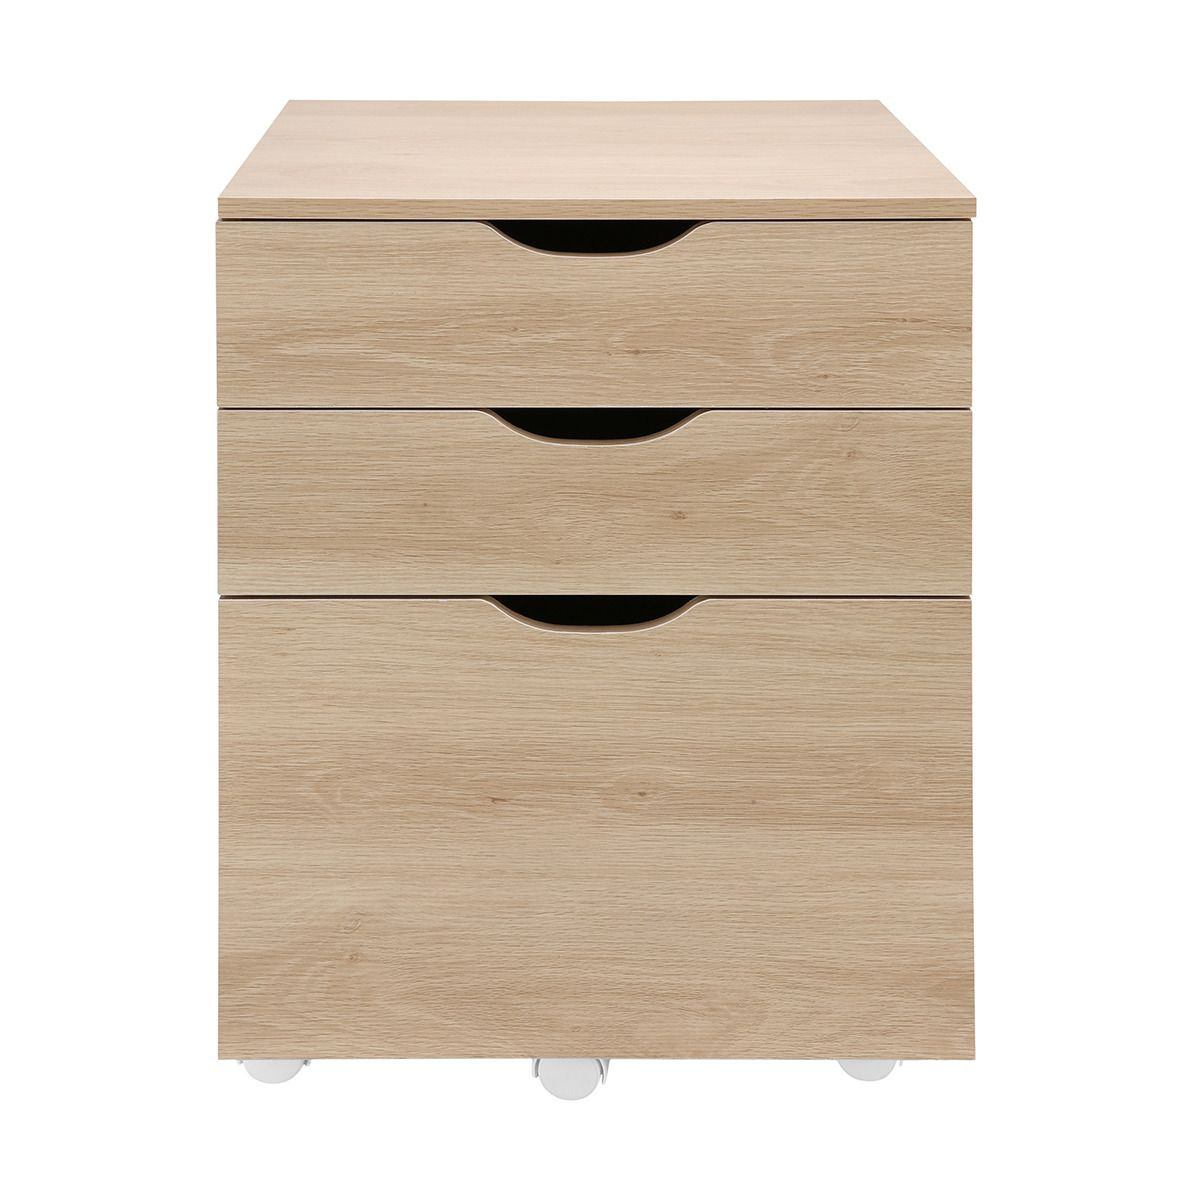 Oak Look Desk Drawers Kmart Desk With Drawers Drawers Pink Side Plates